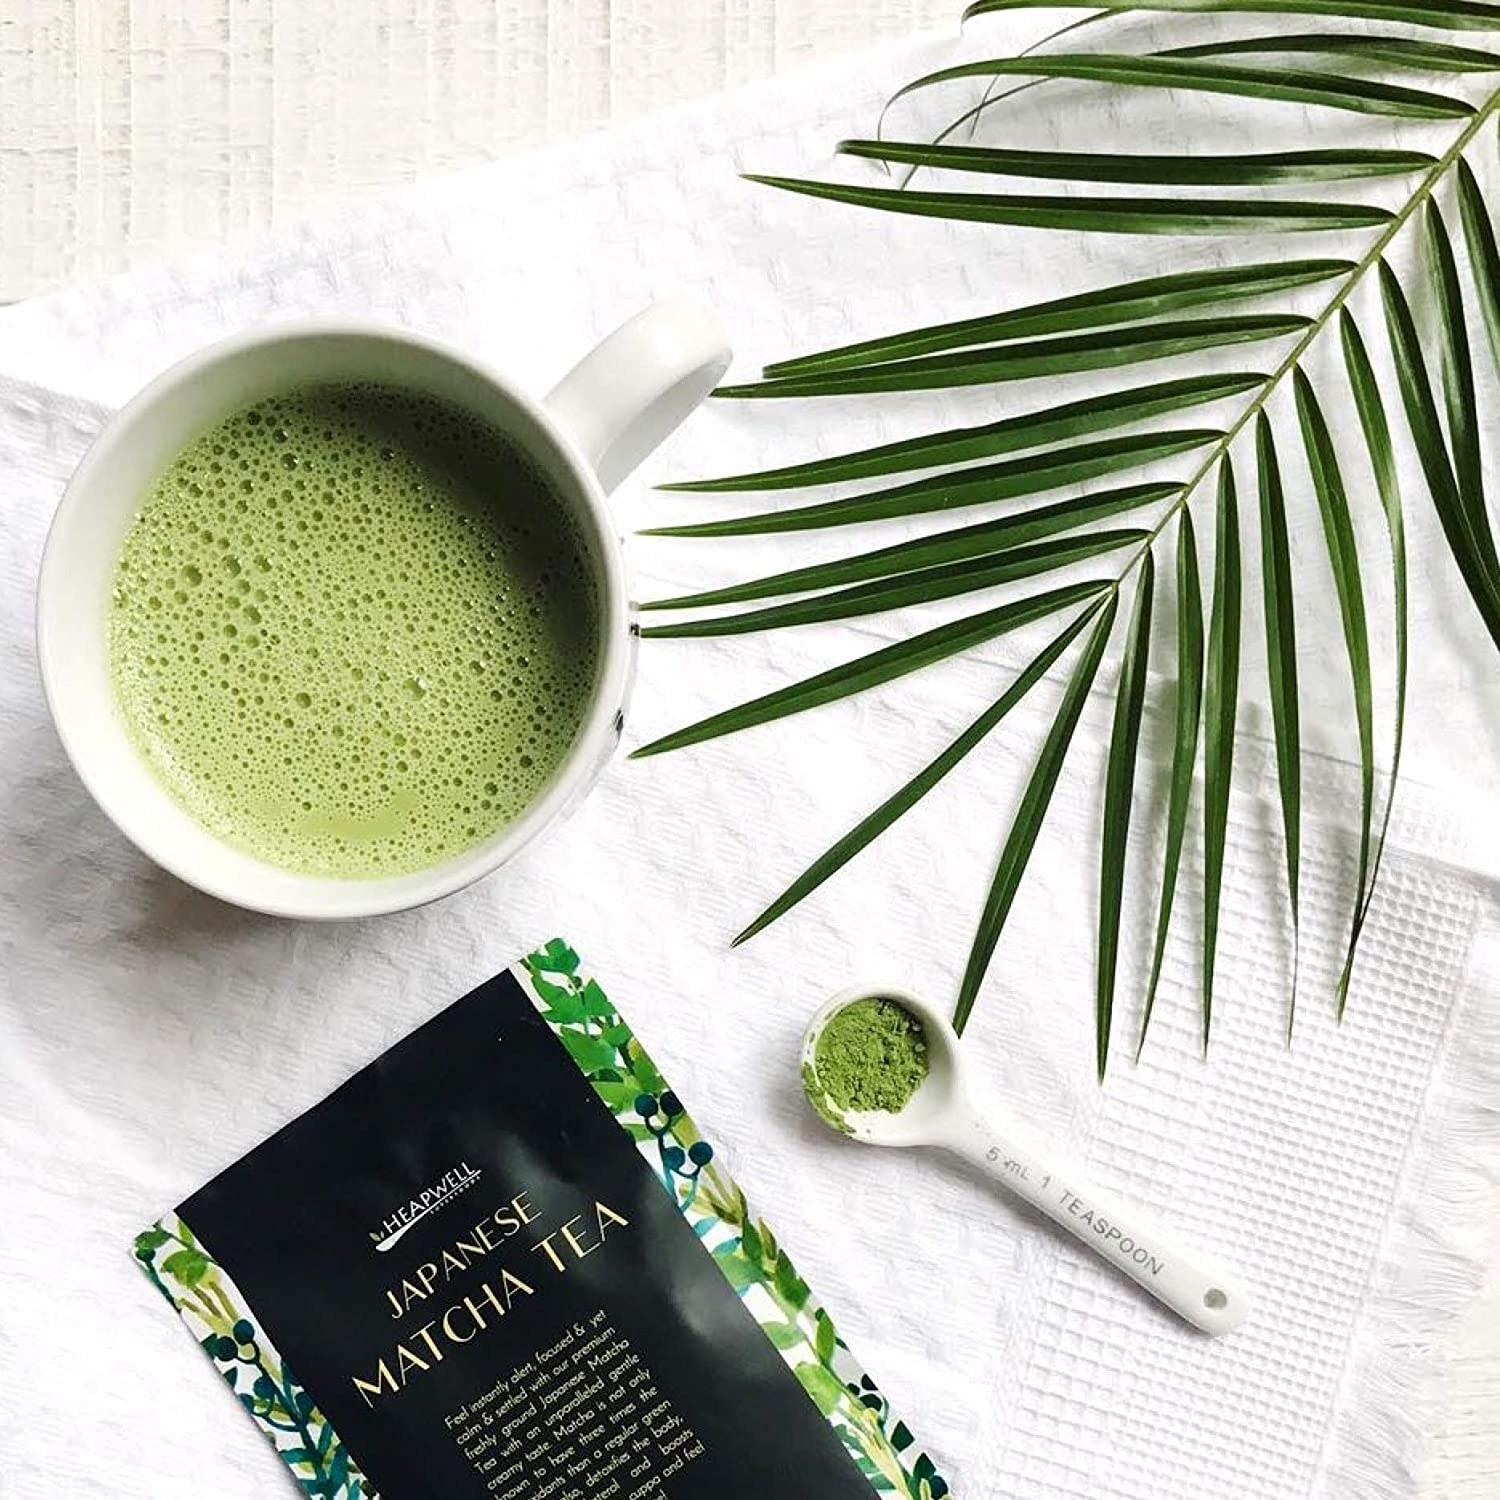 A mug of matcha pictured with a fern and the matcha packet